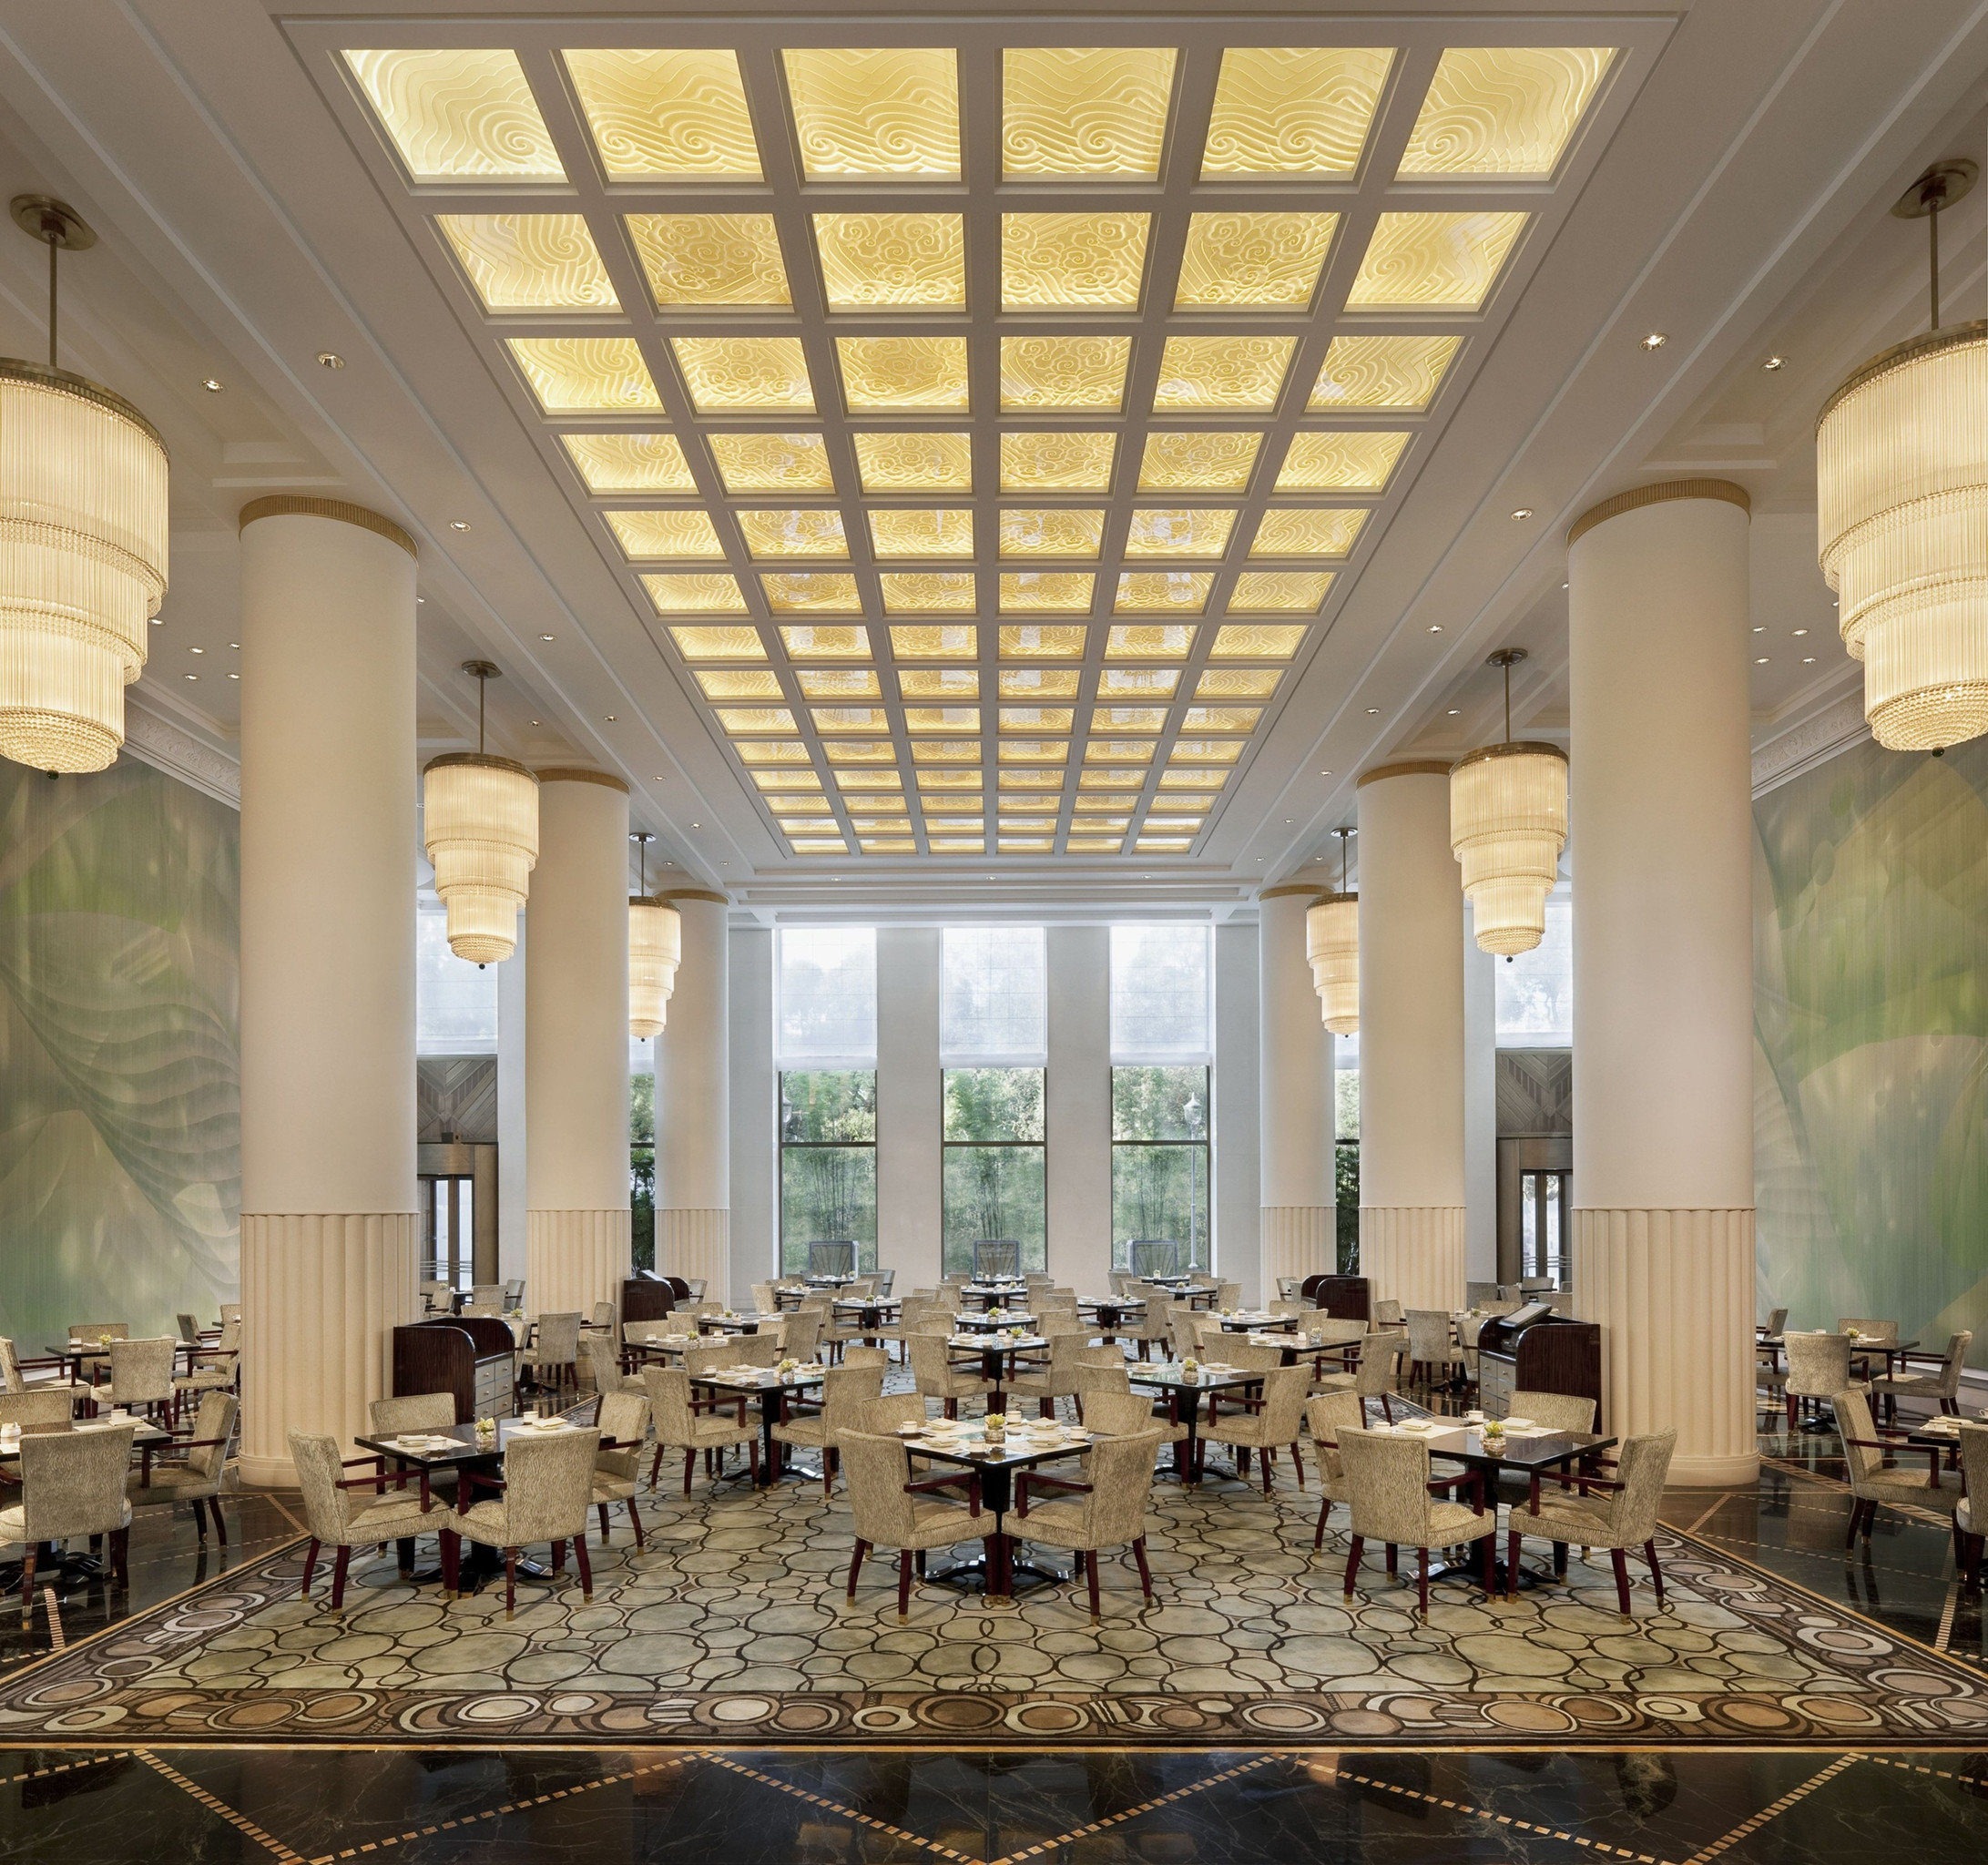 Bar Dining Drink Eat Elegant Scenic views structure Lobby Architecture palace convention center ballroom tourist attraction auditorium